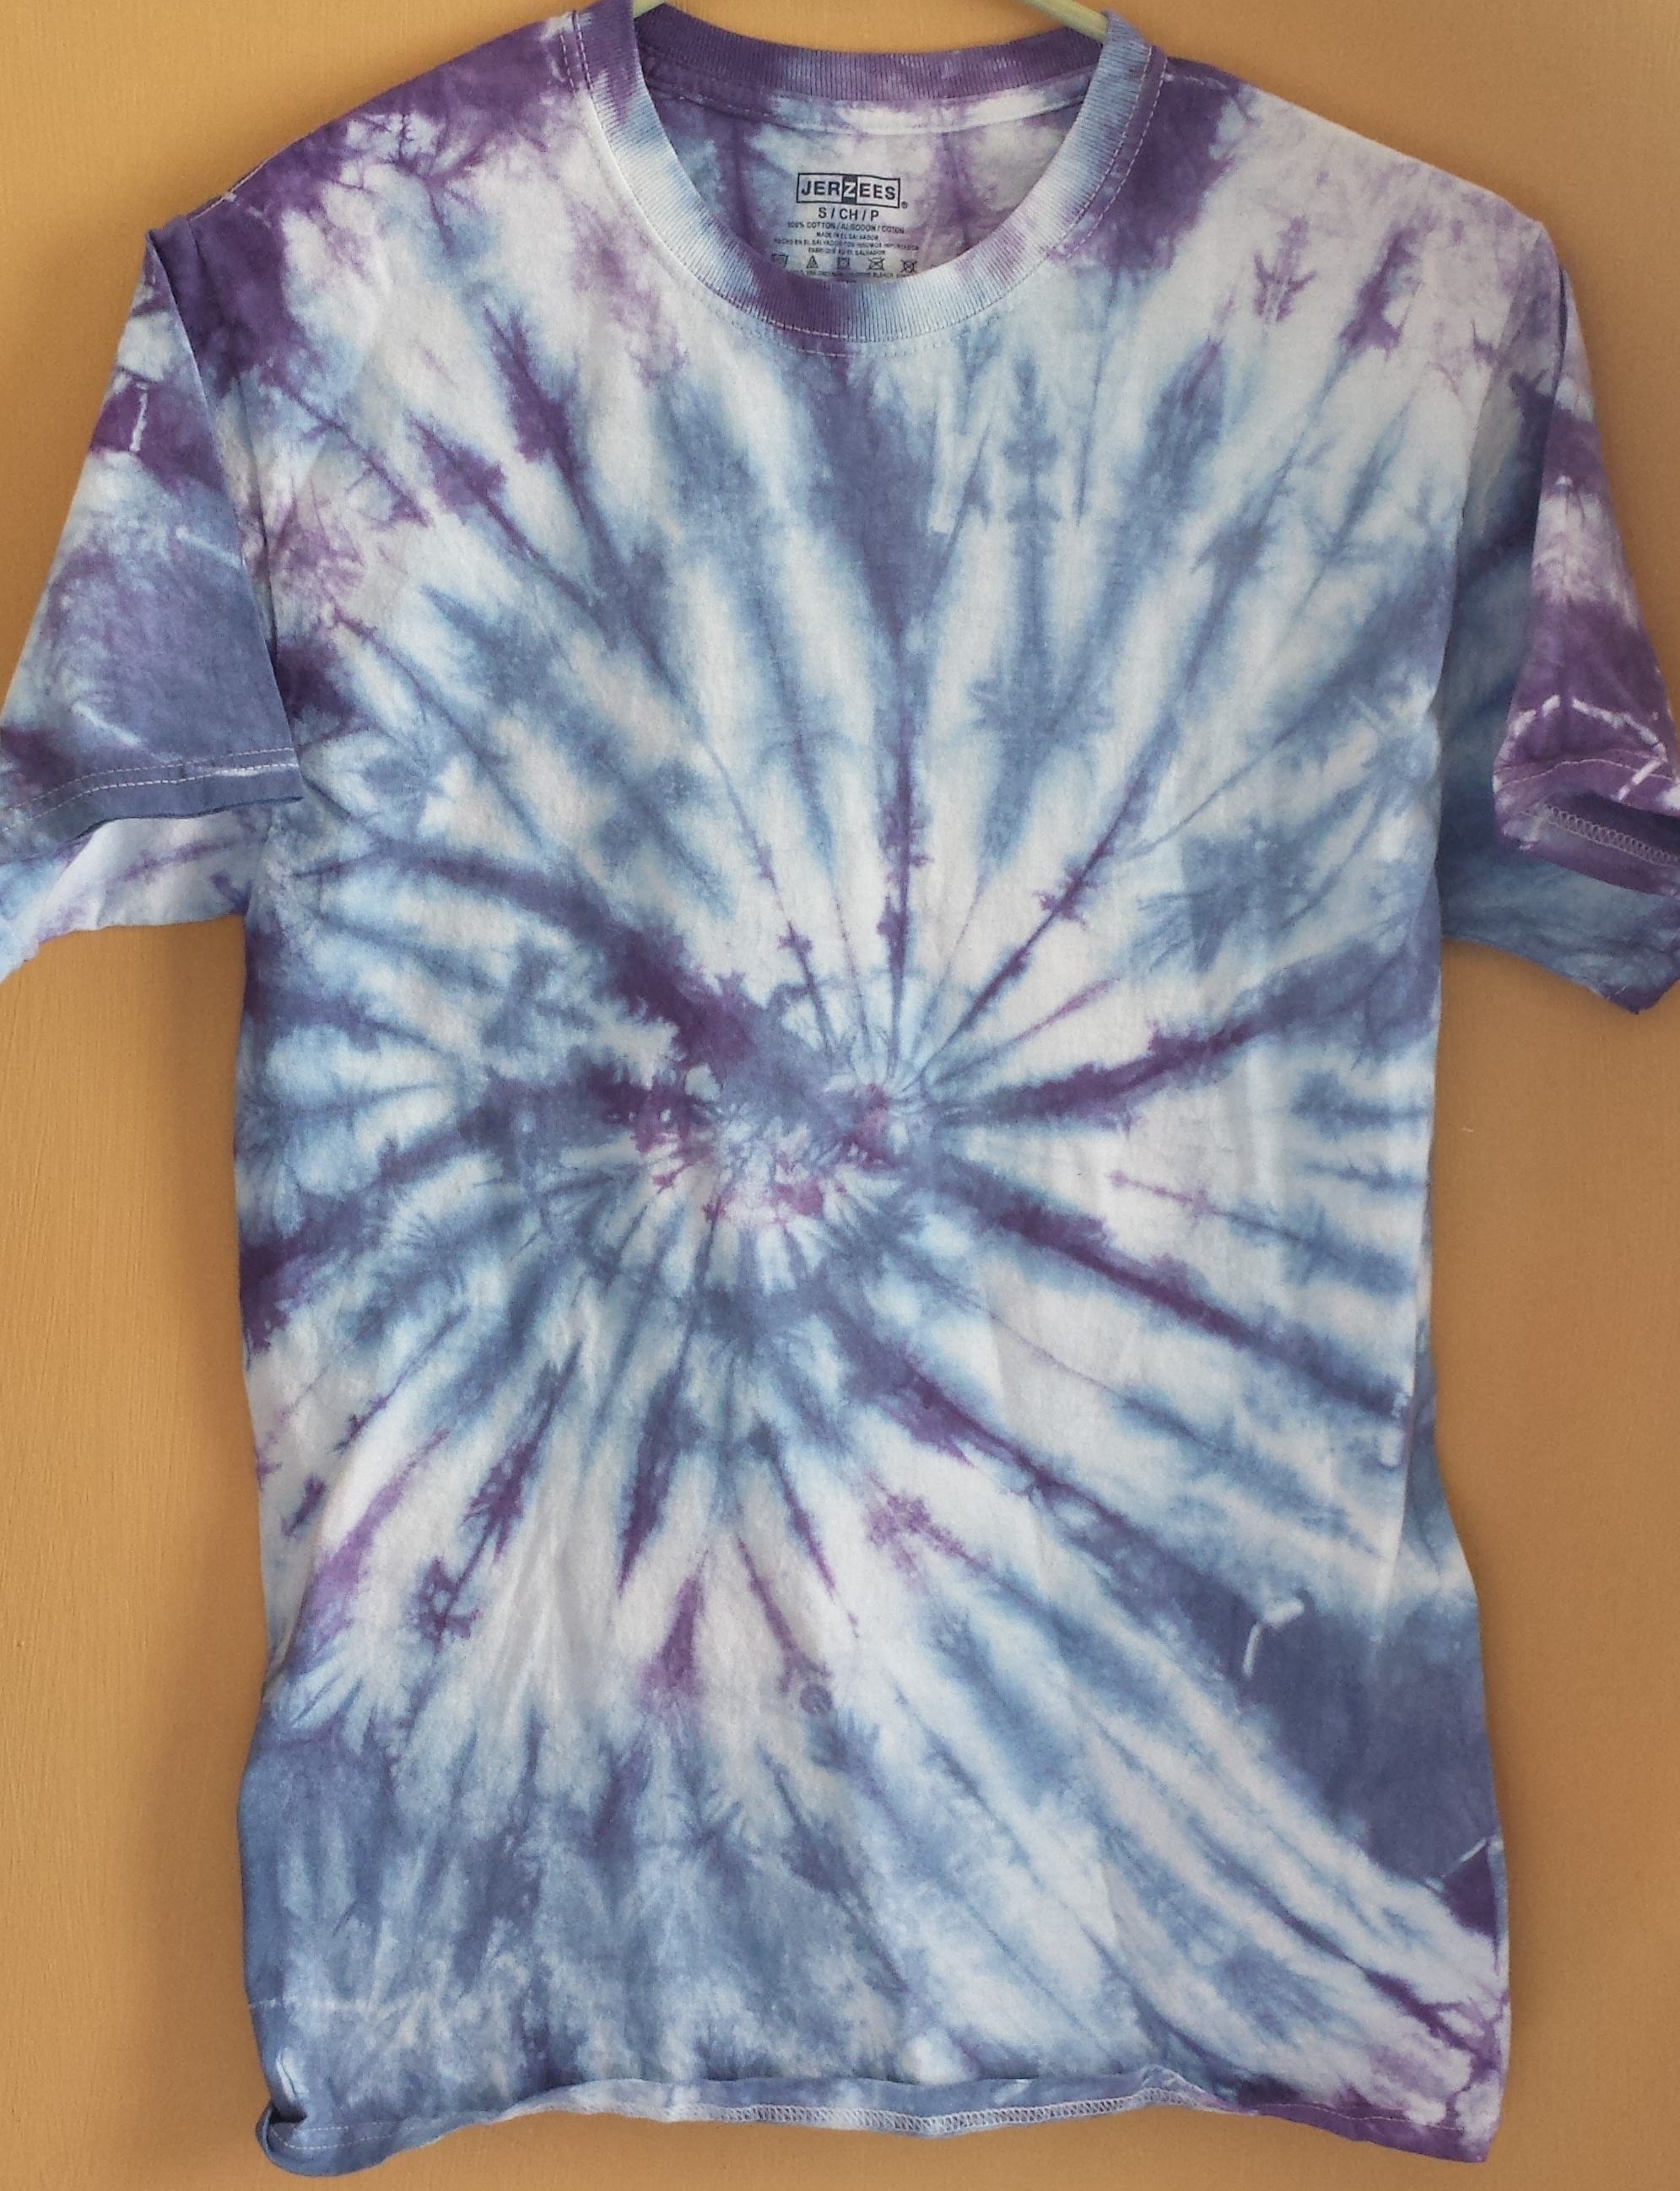 28d51740402be Purple, Blue, and White Tie Dye Shirt (S)